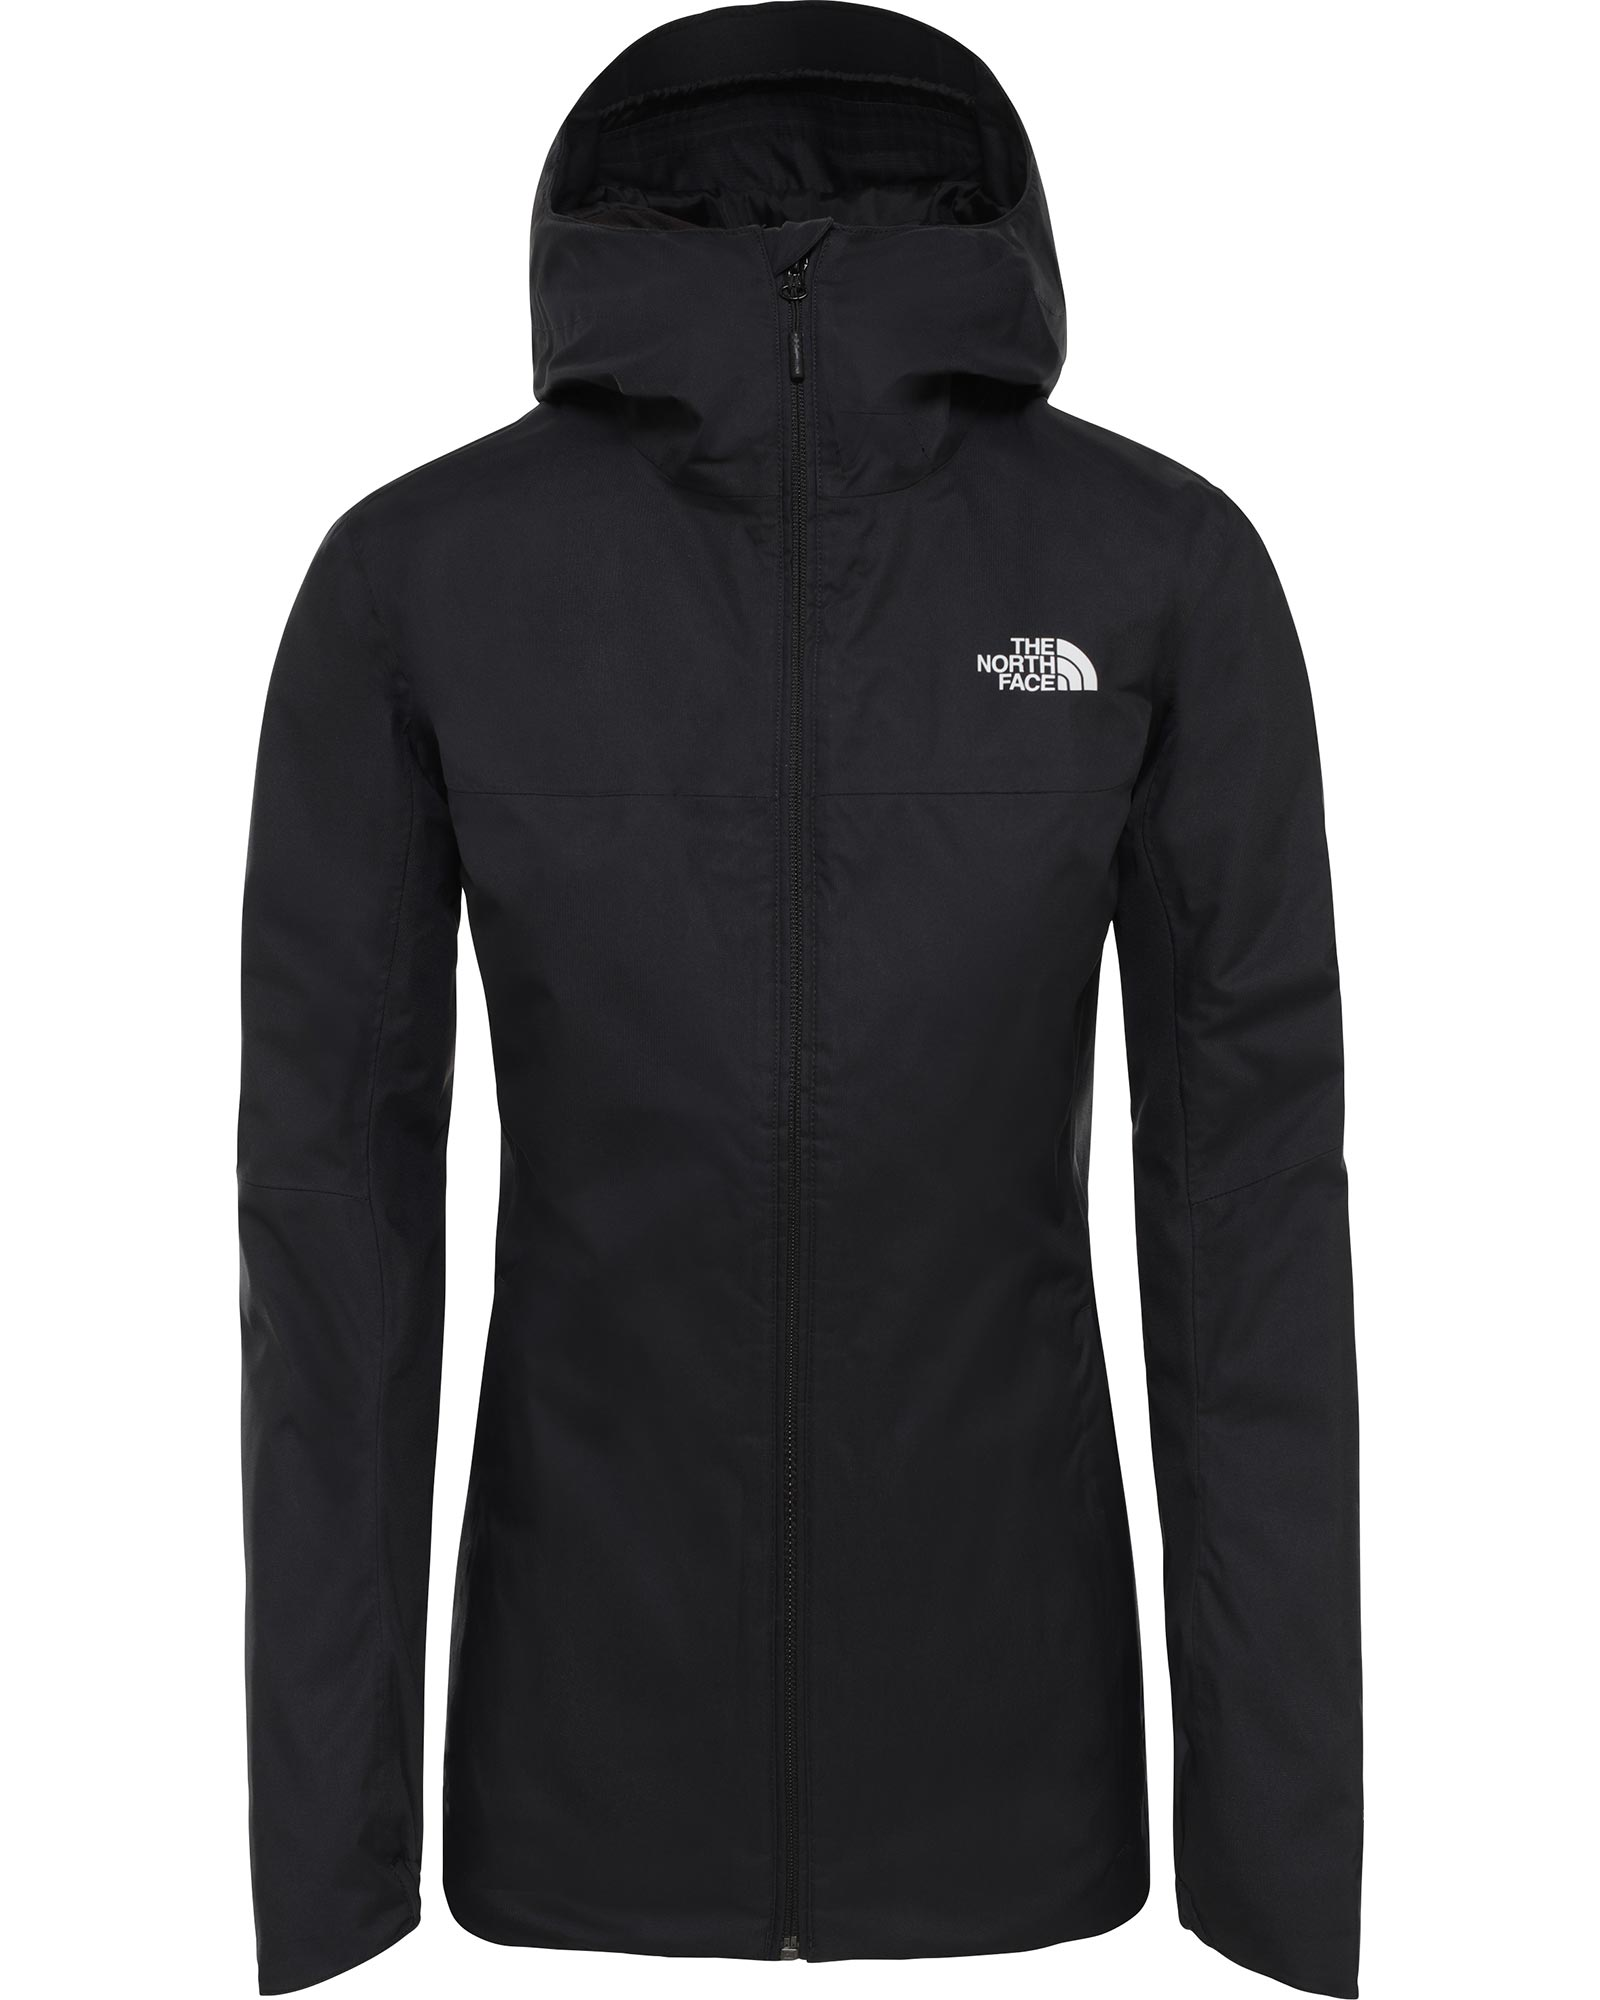 The North Face Quest DryVent Women's Insulated Jacket 0